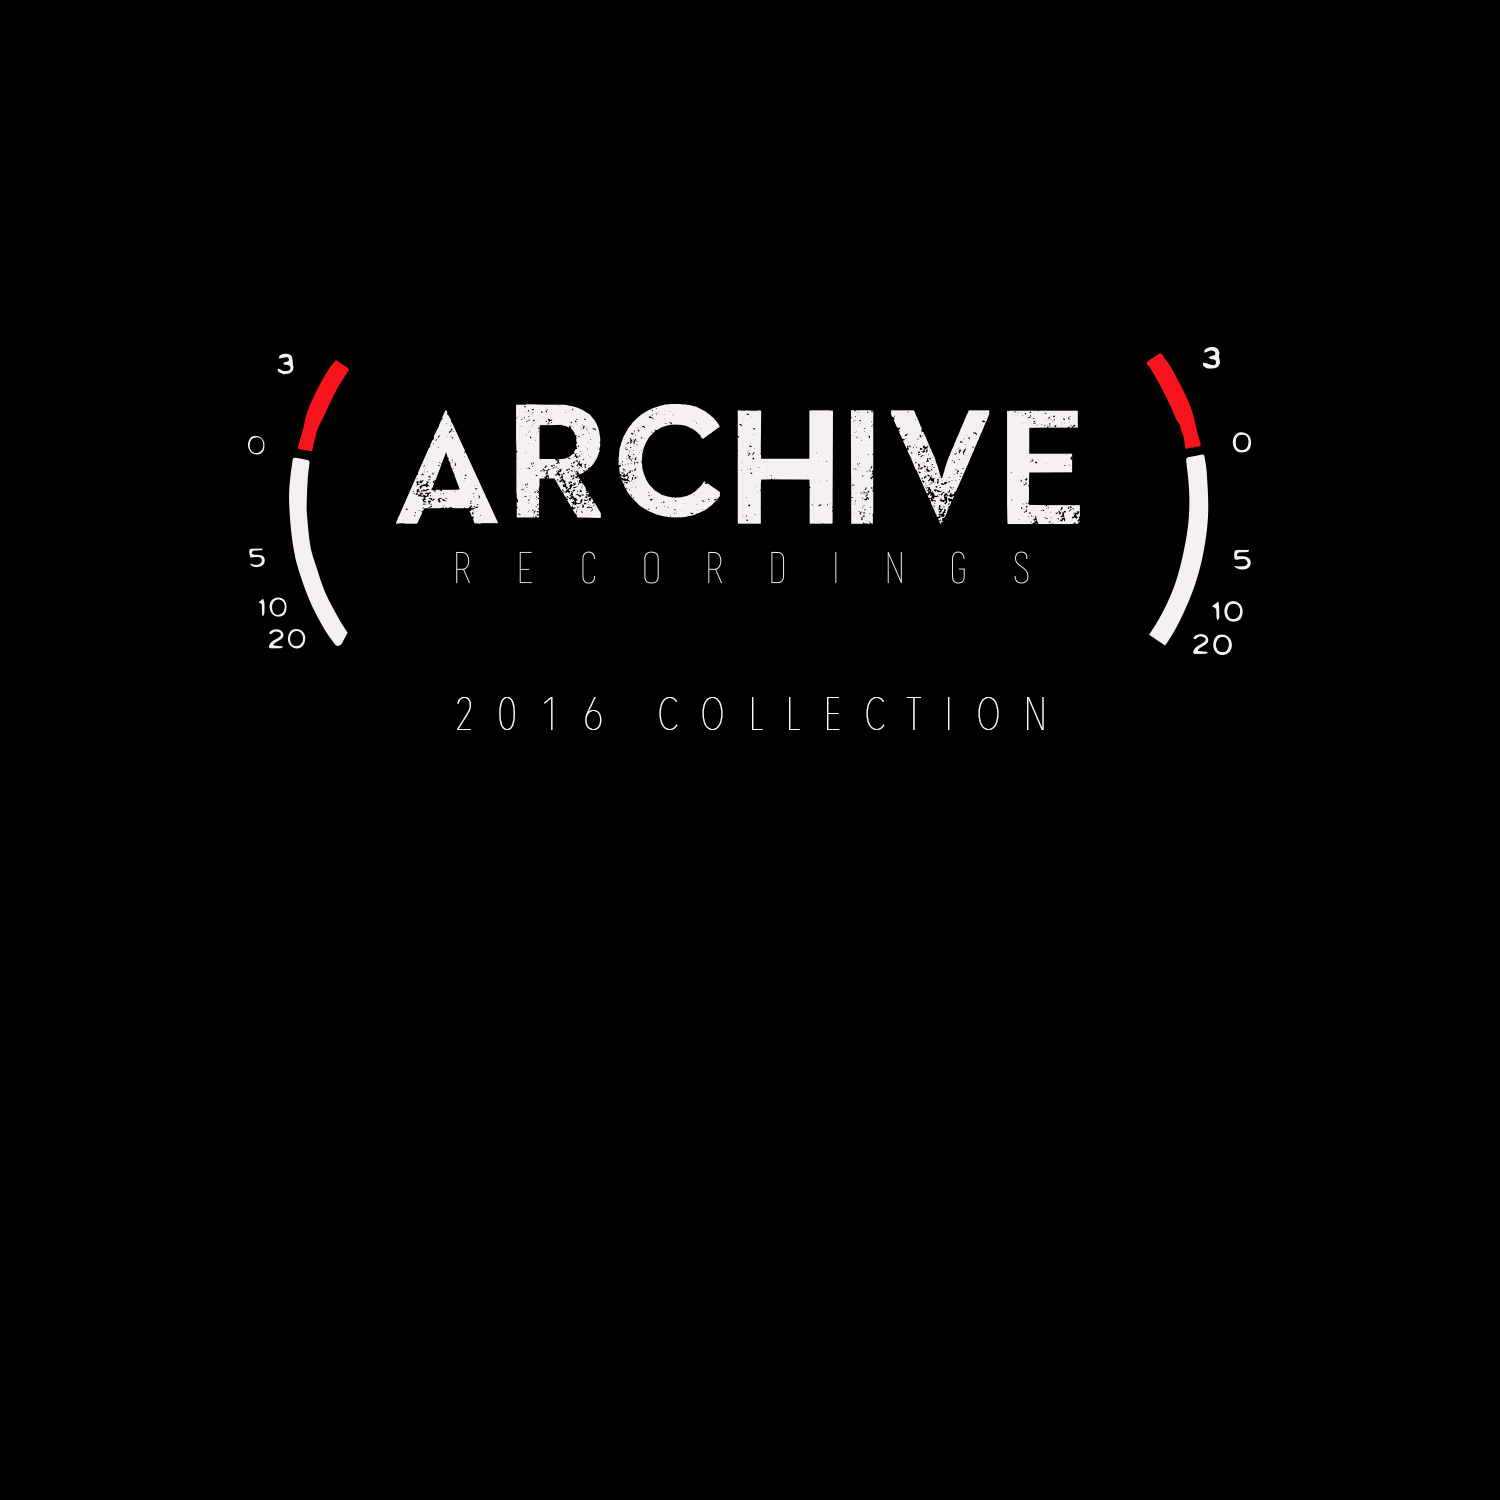 Archive Recordings 2016 Collection